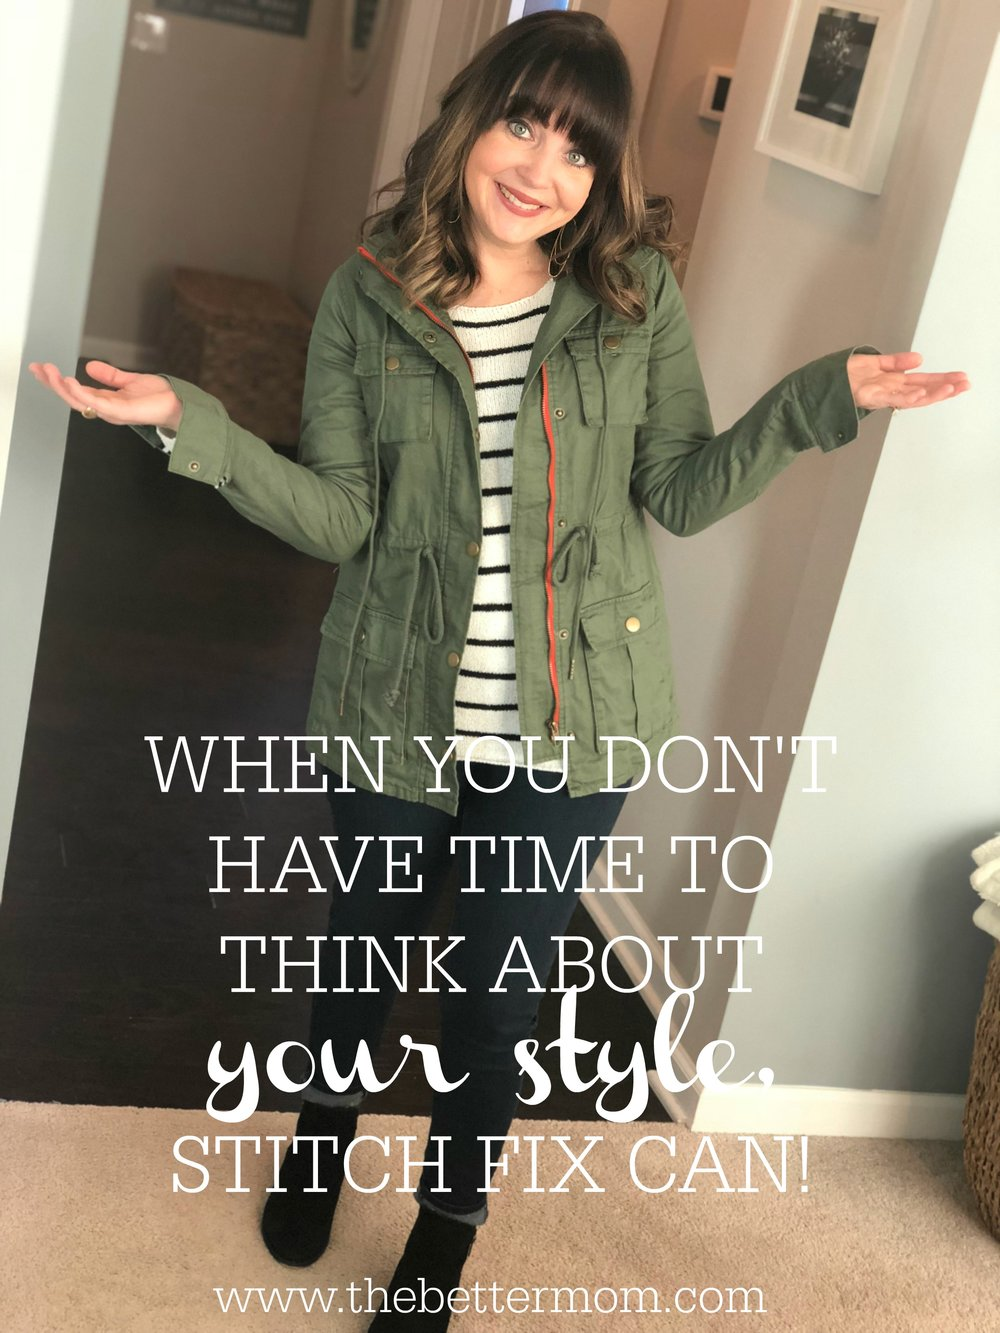 Are you tired of the same ol' when it comes to your wardrobe? How would you like to have a personal stylist? Sounds fancy, doesn't it? Well, it's not fancy, but it is fun! I LOVE Stitch Fix and today I am sharing a special promo link where you can get your very first fix sent to you for FREE! Check it out!